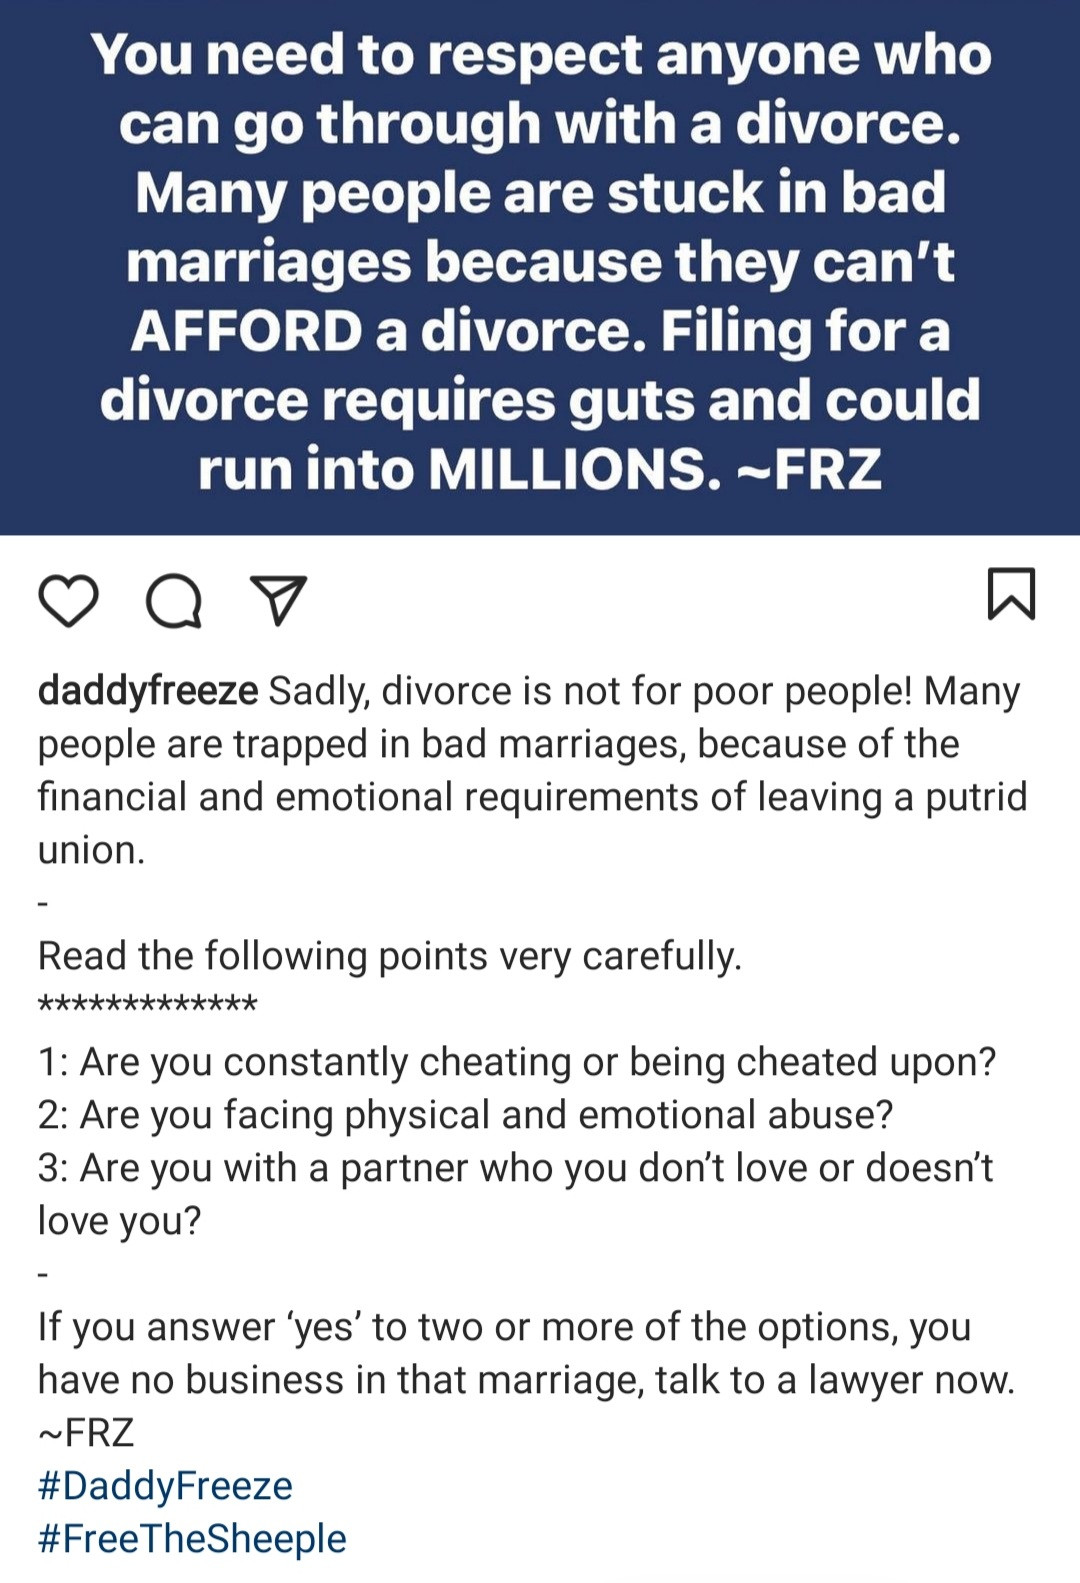 """Respect anyone who can go through with a divorce"" Daddy Freeze says as he lists reasons to file for a divorce"